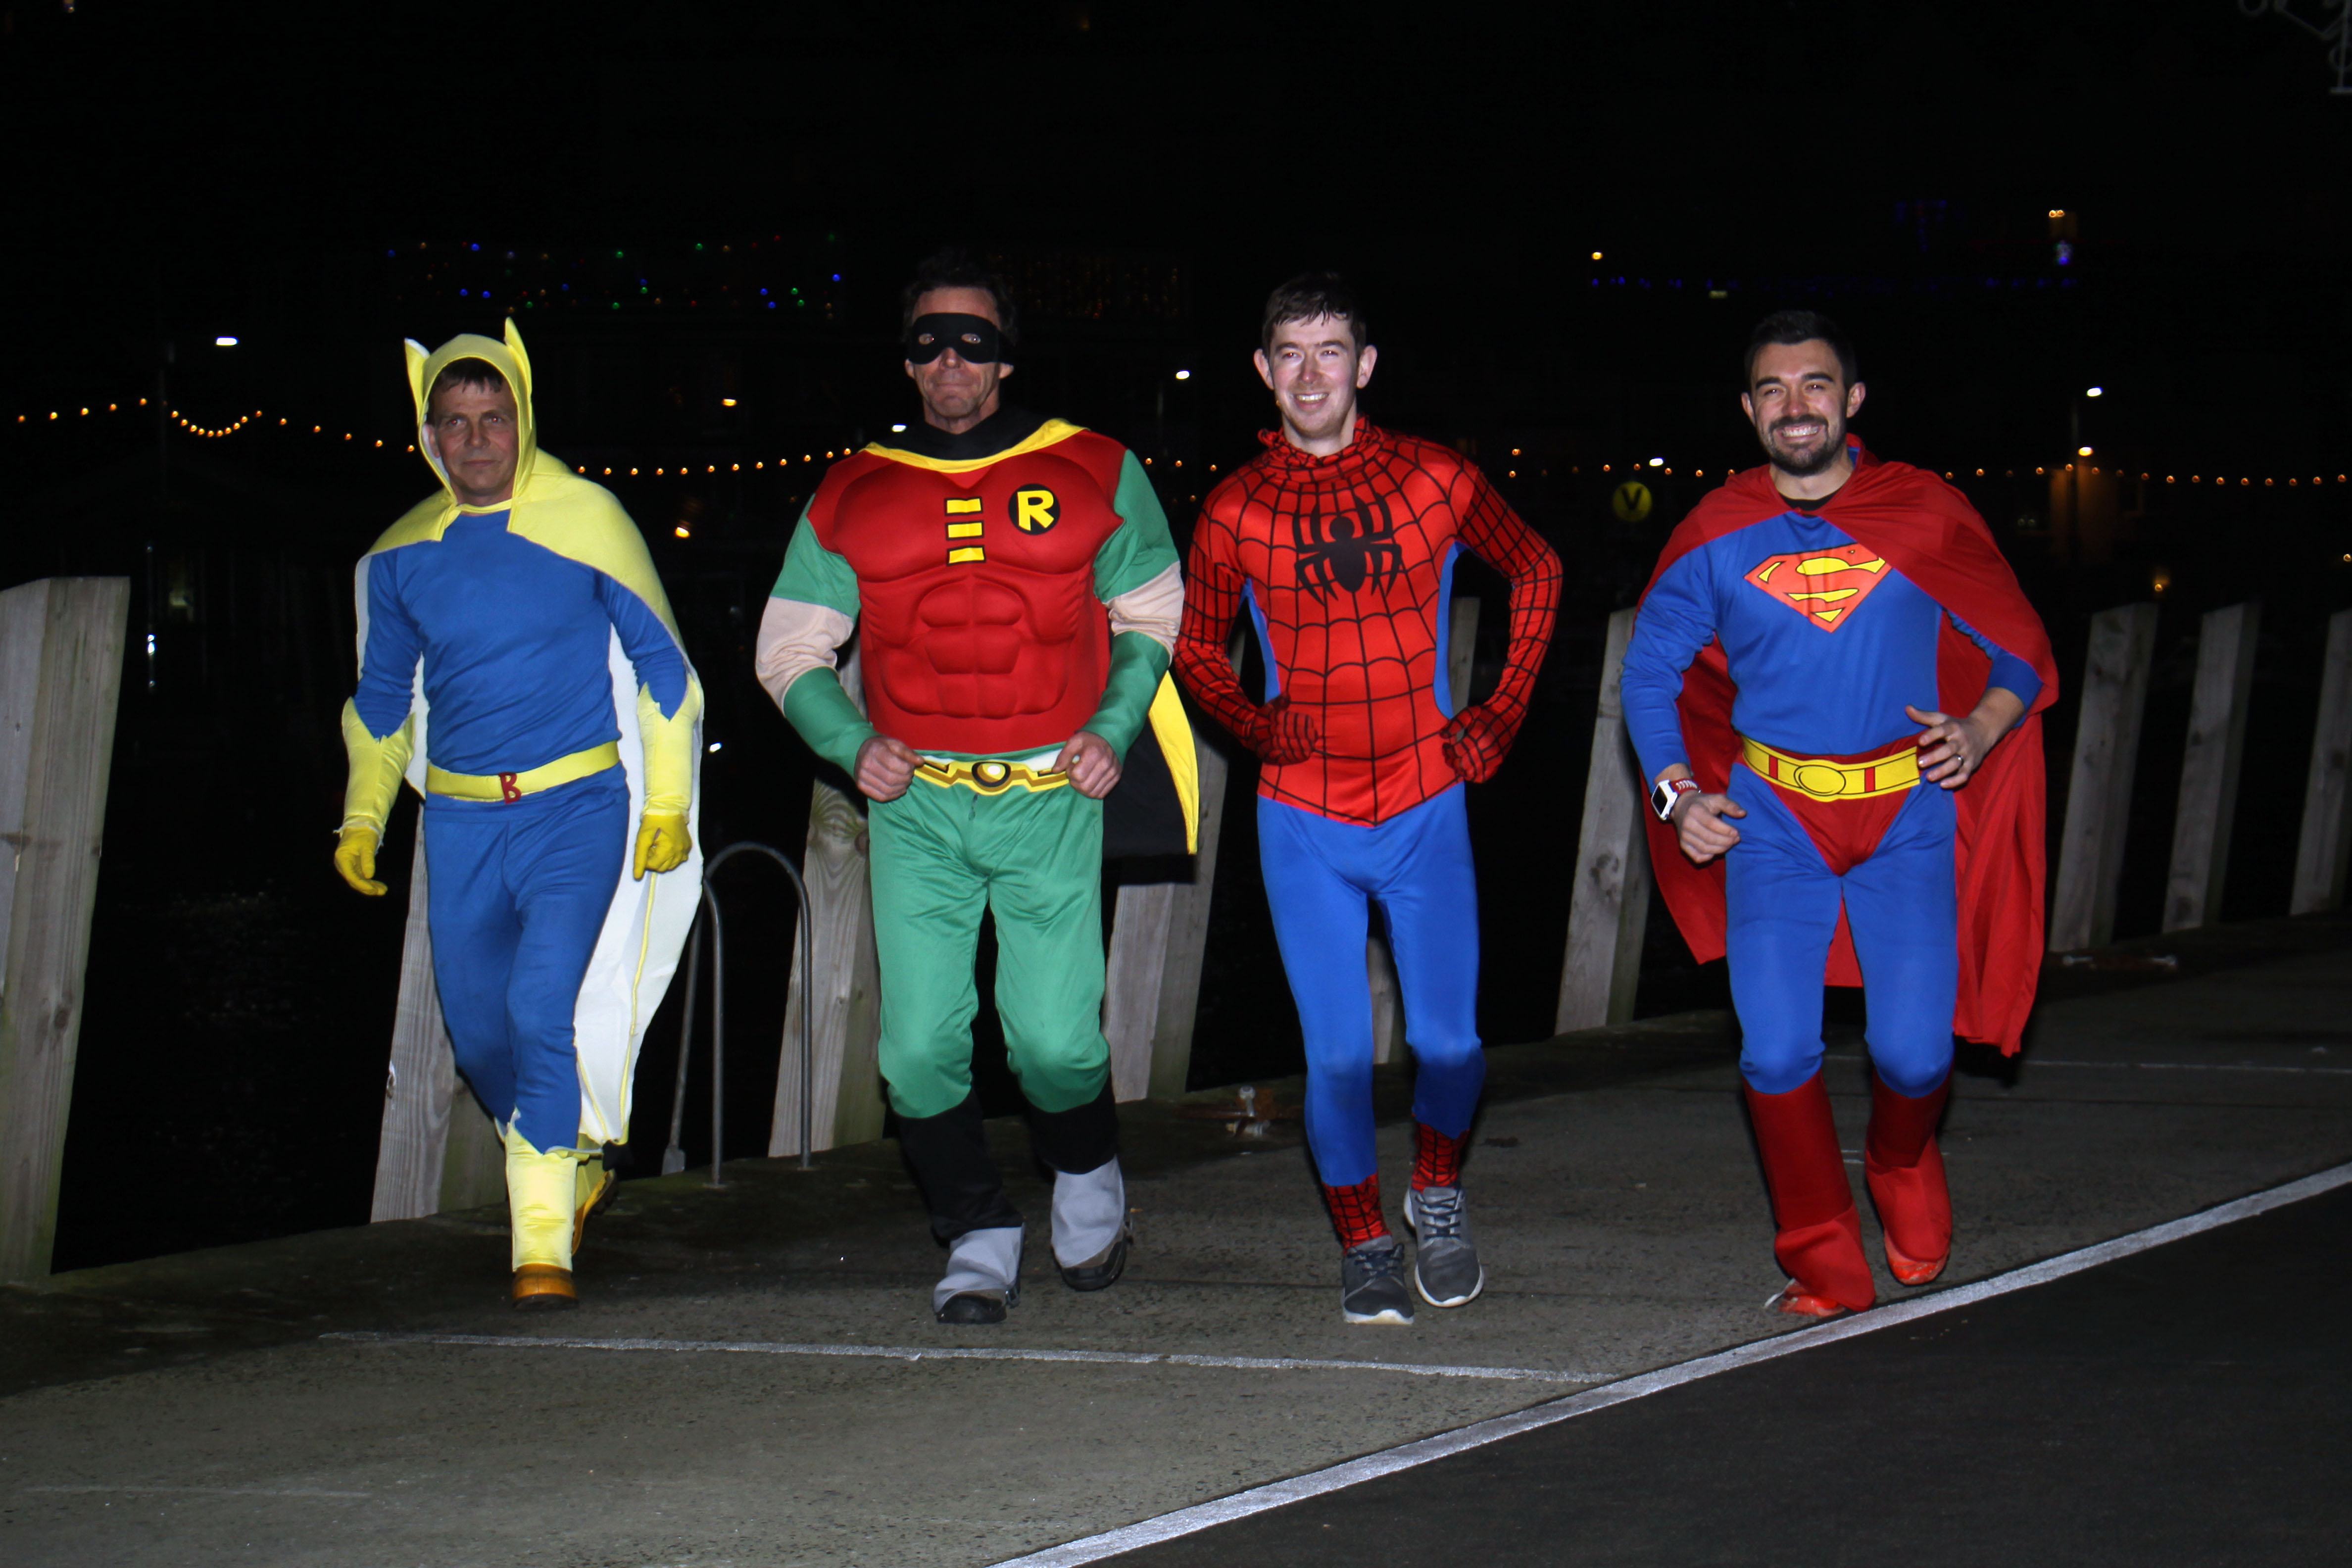 Looe RNLI crew 'superheroes' in their fancy dress, which they were wearing when they responded to a shout on New Year's Day